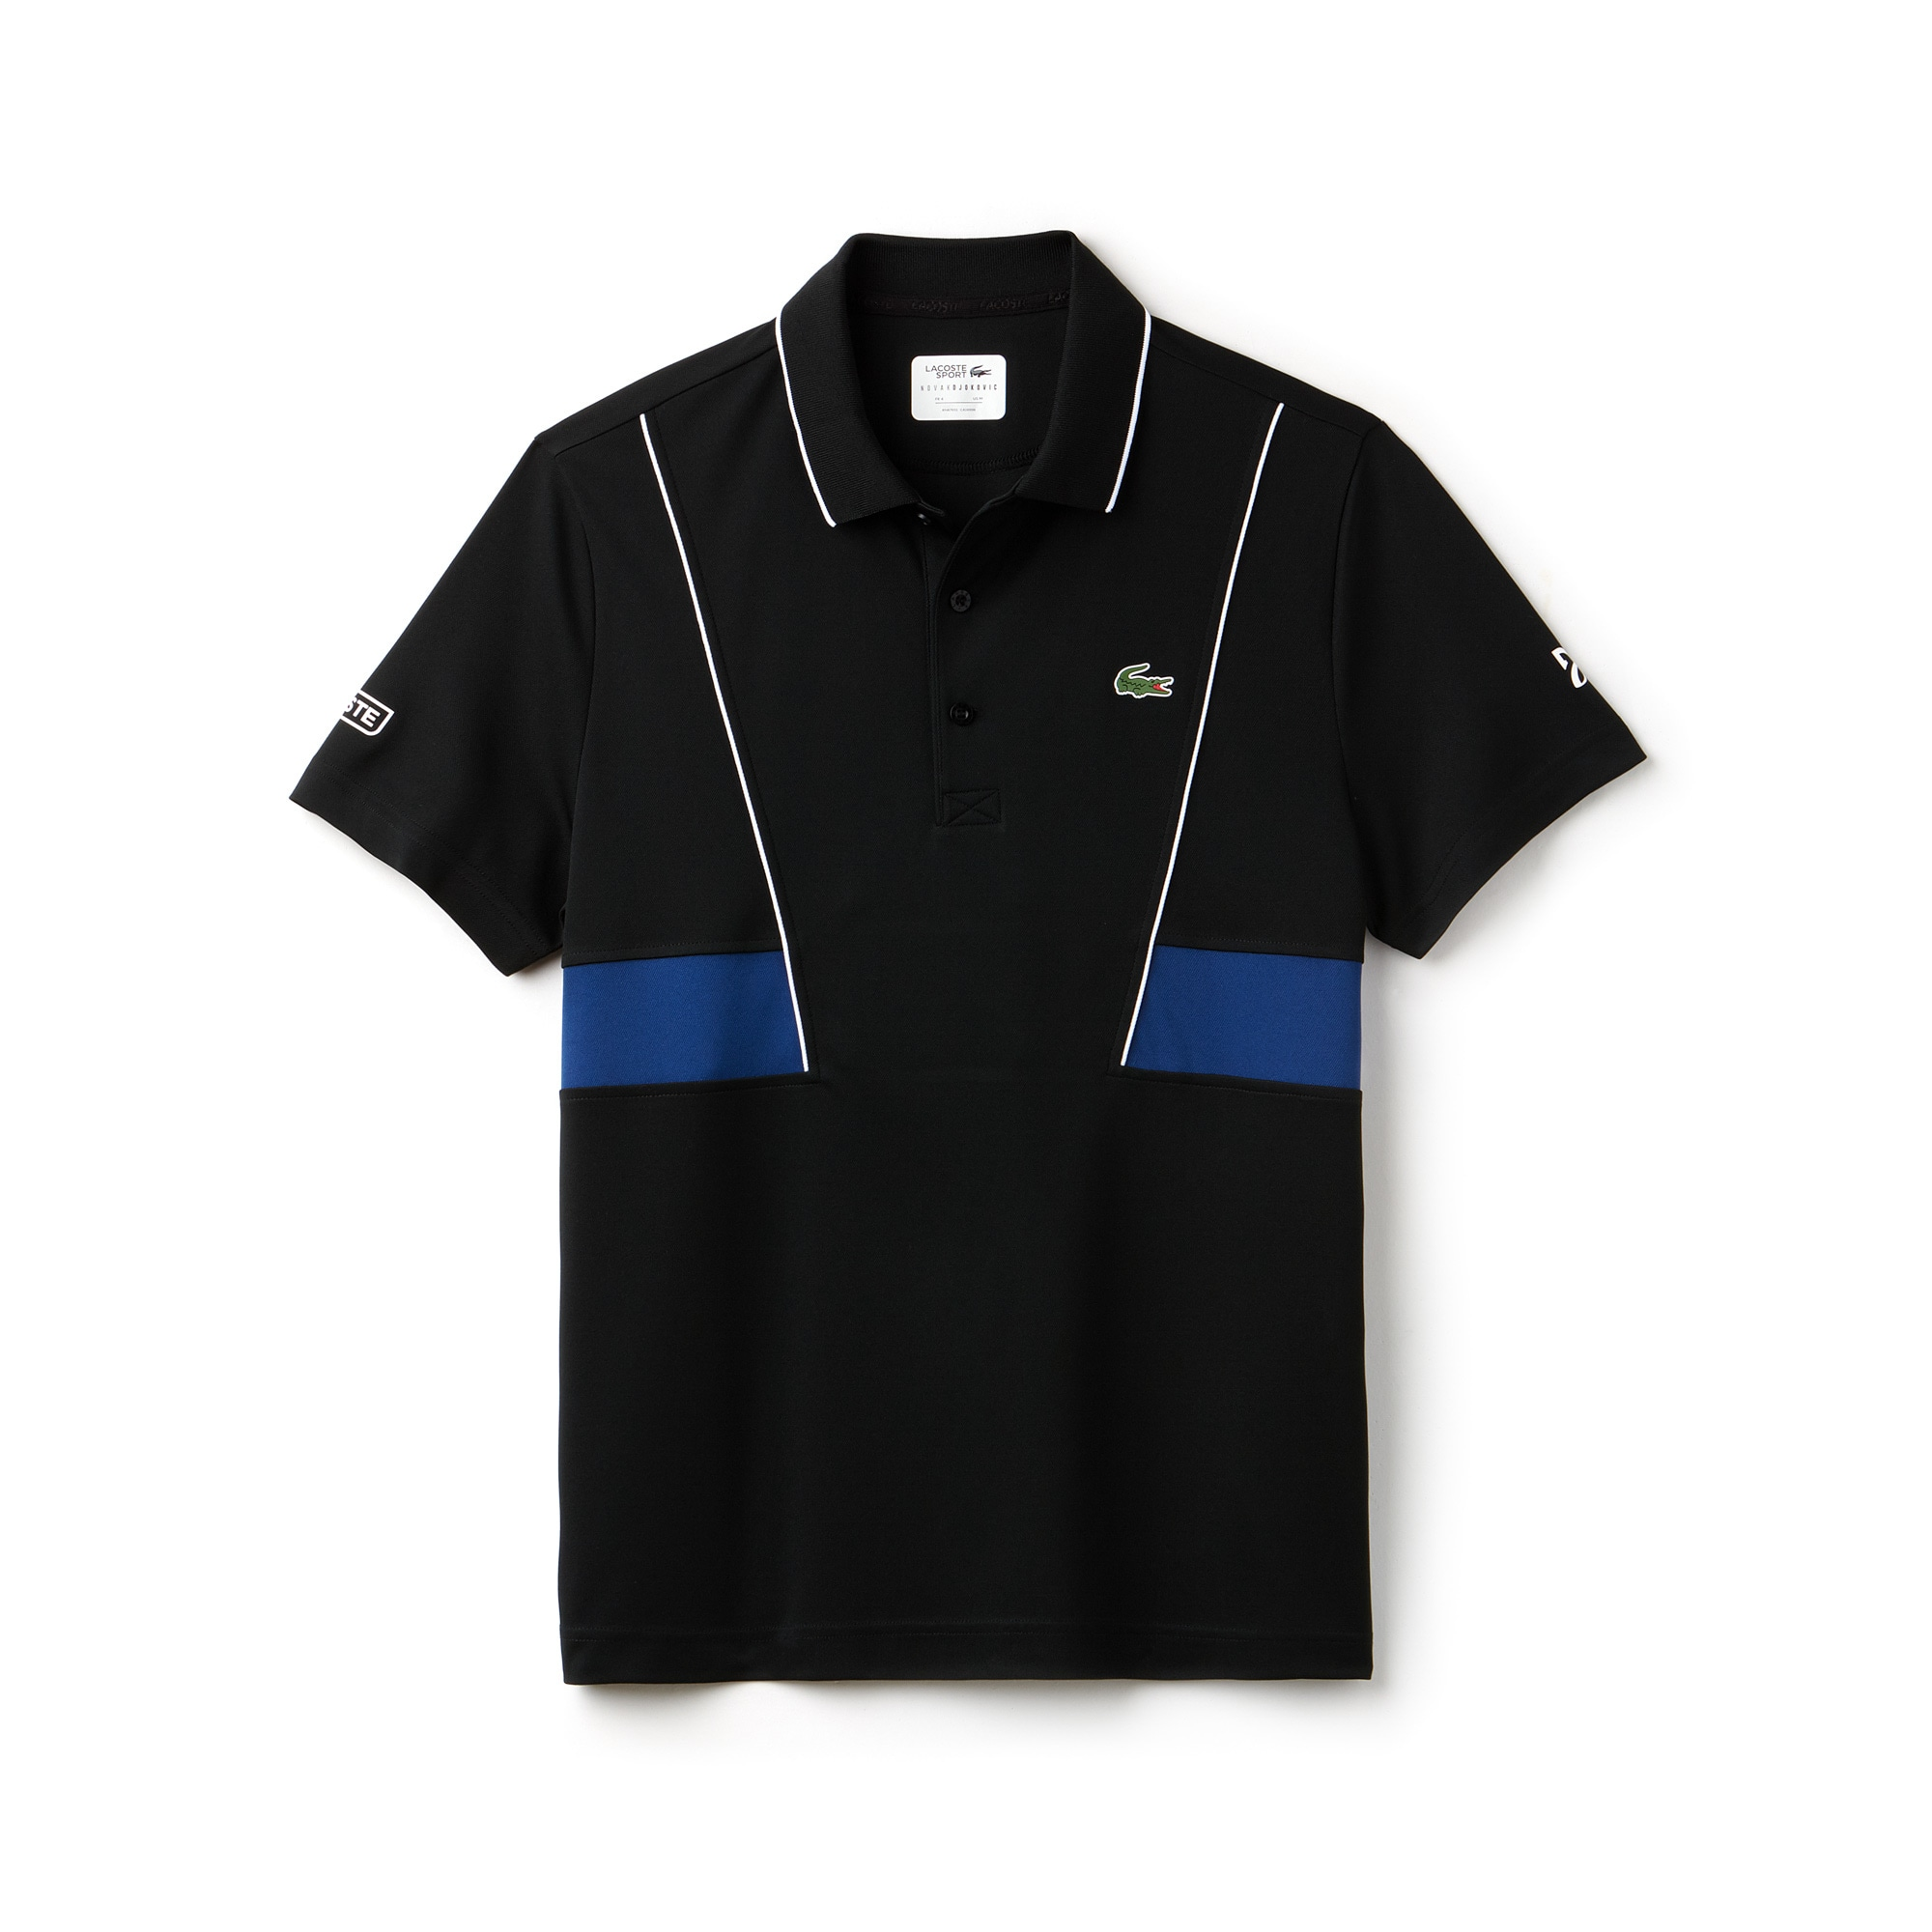 Polo LACOSTE SPORT COLLECTION NOVAK DJOKOVIC en piqué técnico